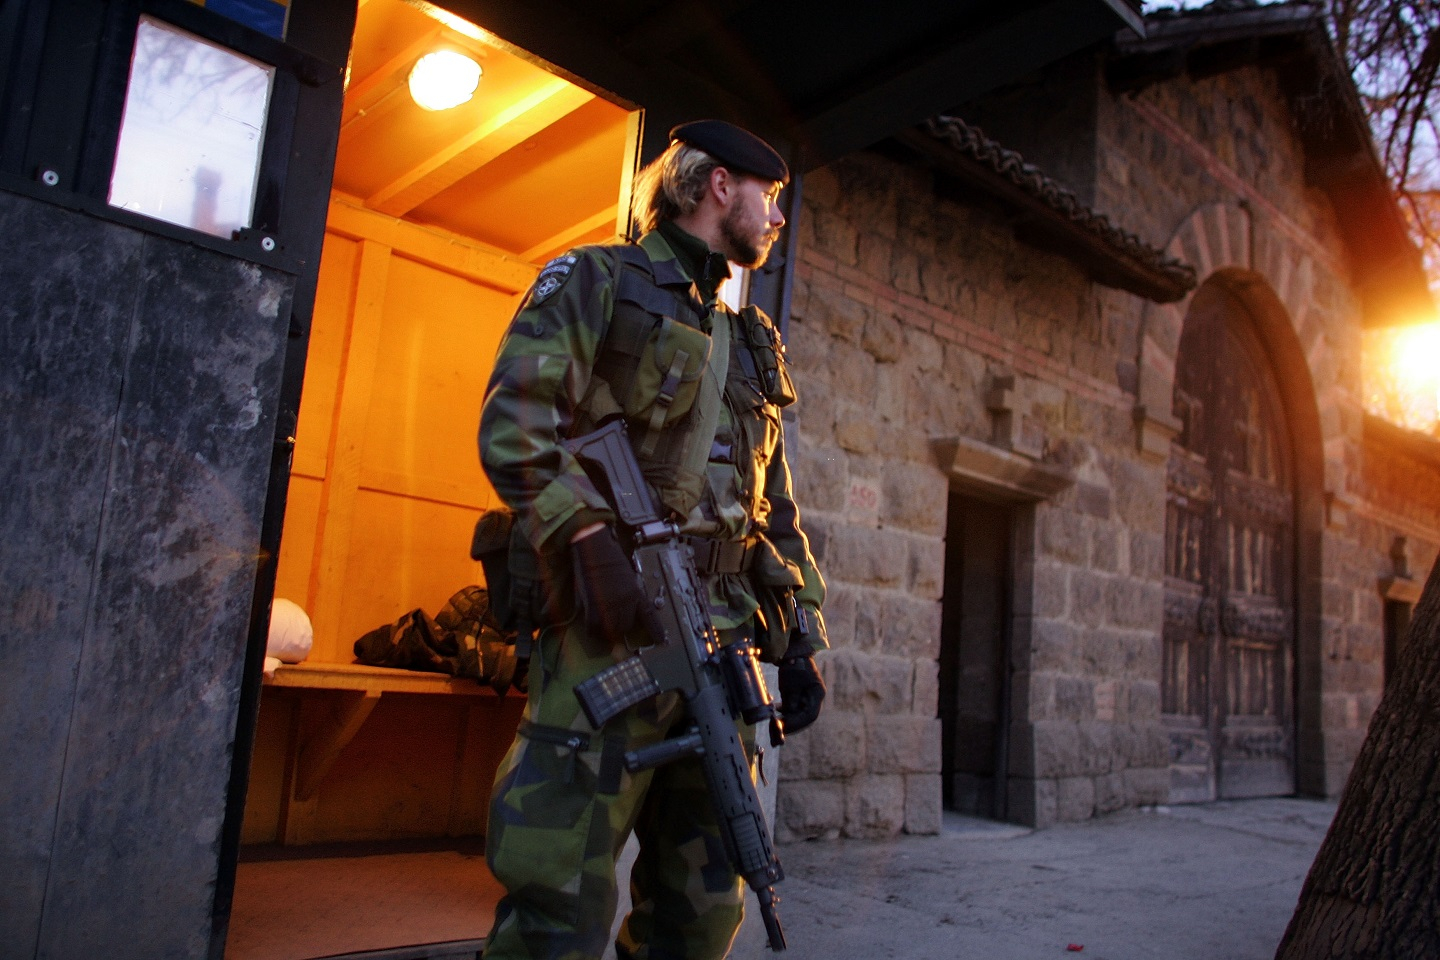 A photograph of a Swedish Kosovo Force (KFOR) soldier.